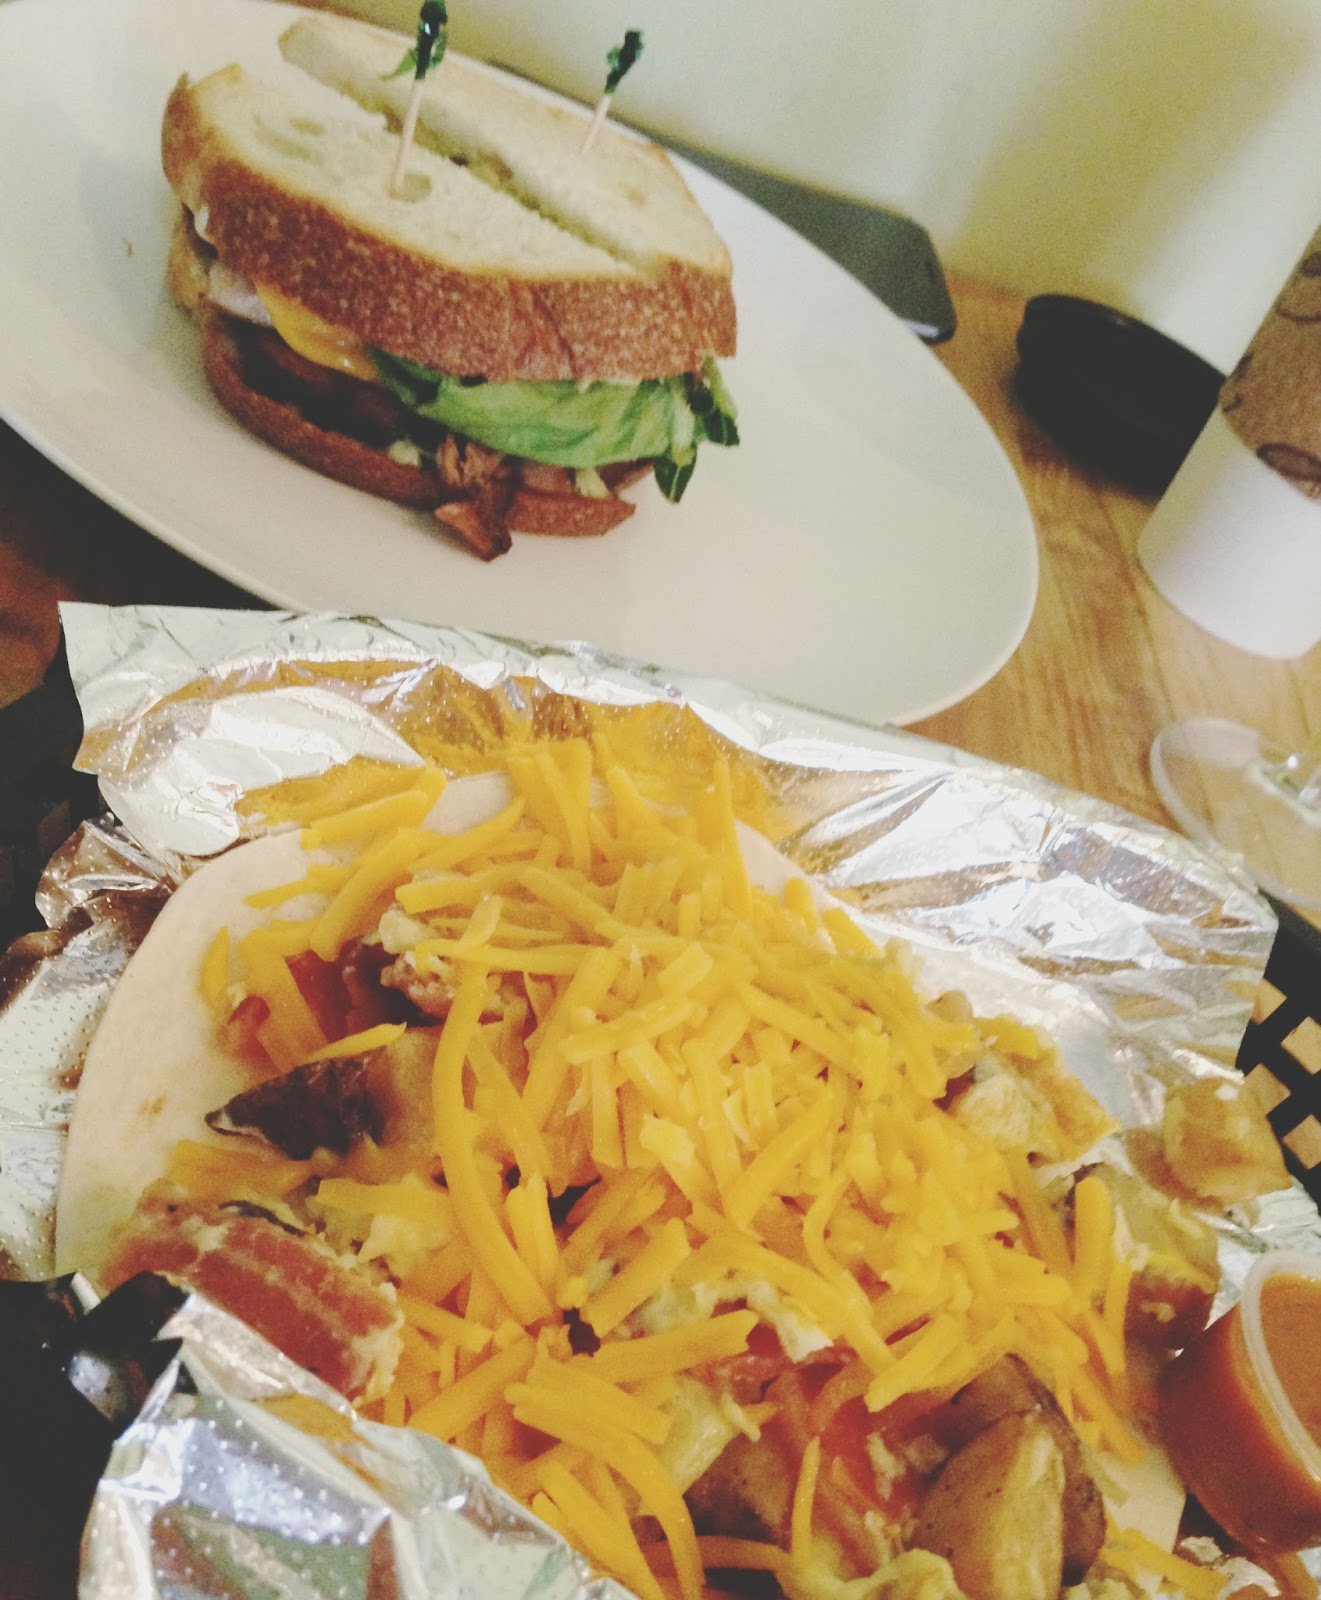 houston - kraftsmen baking - brunch - taco - blt